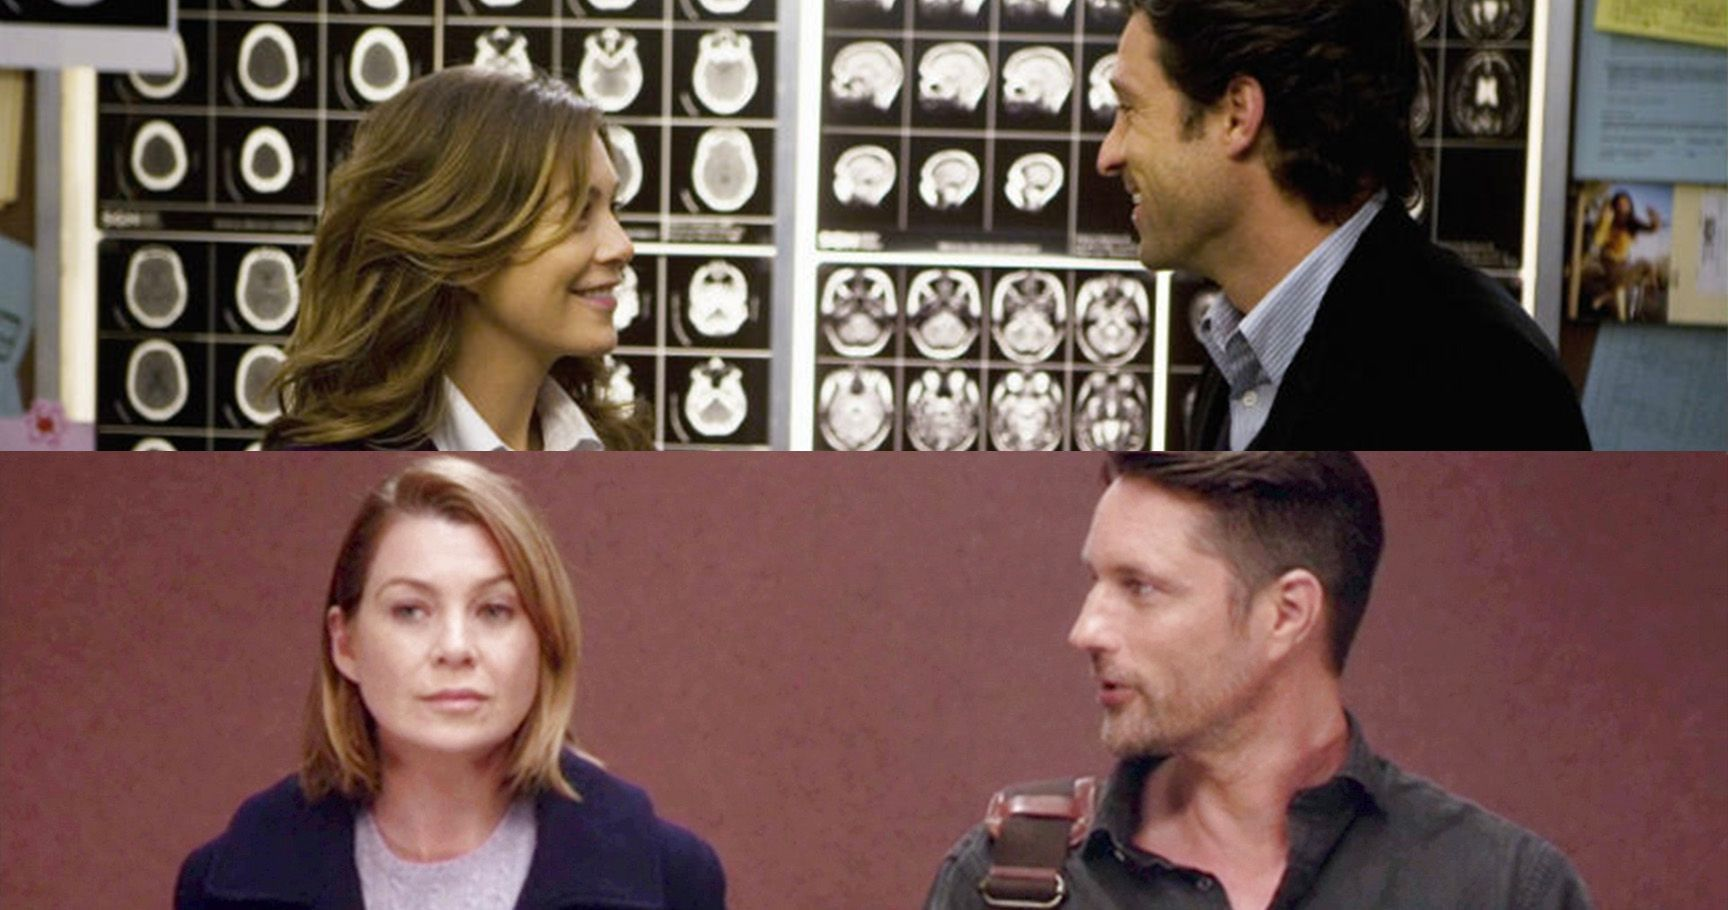 15 'Grey's Anatomy' Questions We Still Need Answers To